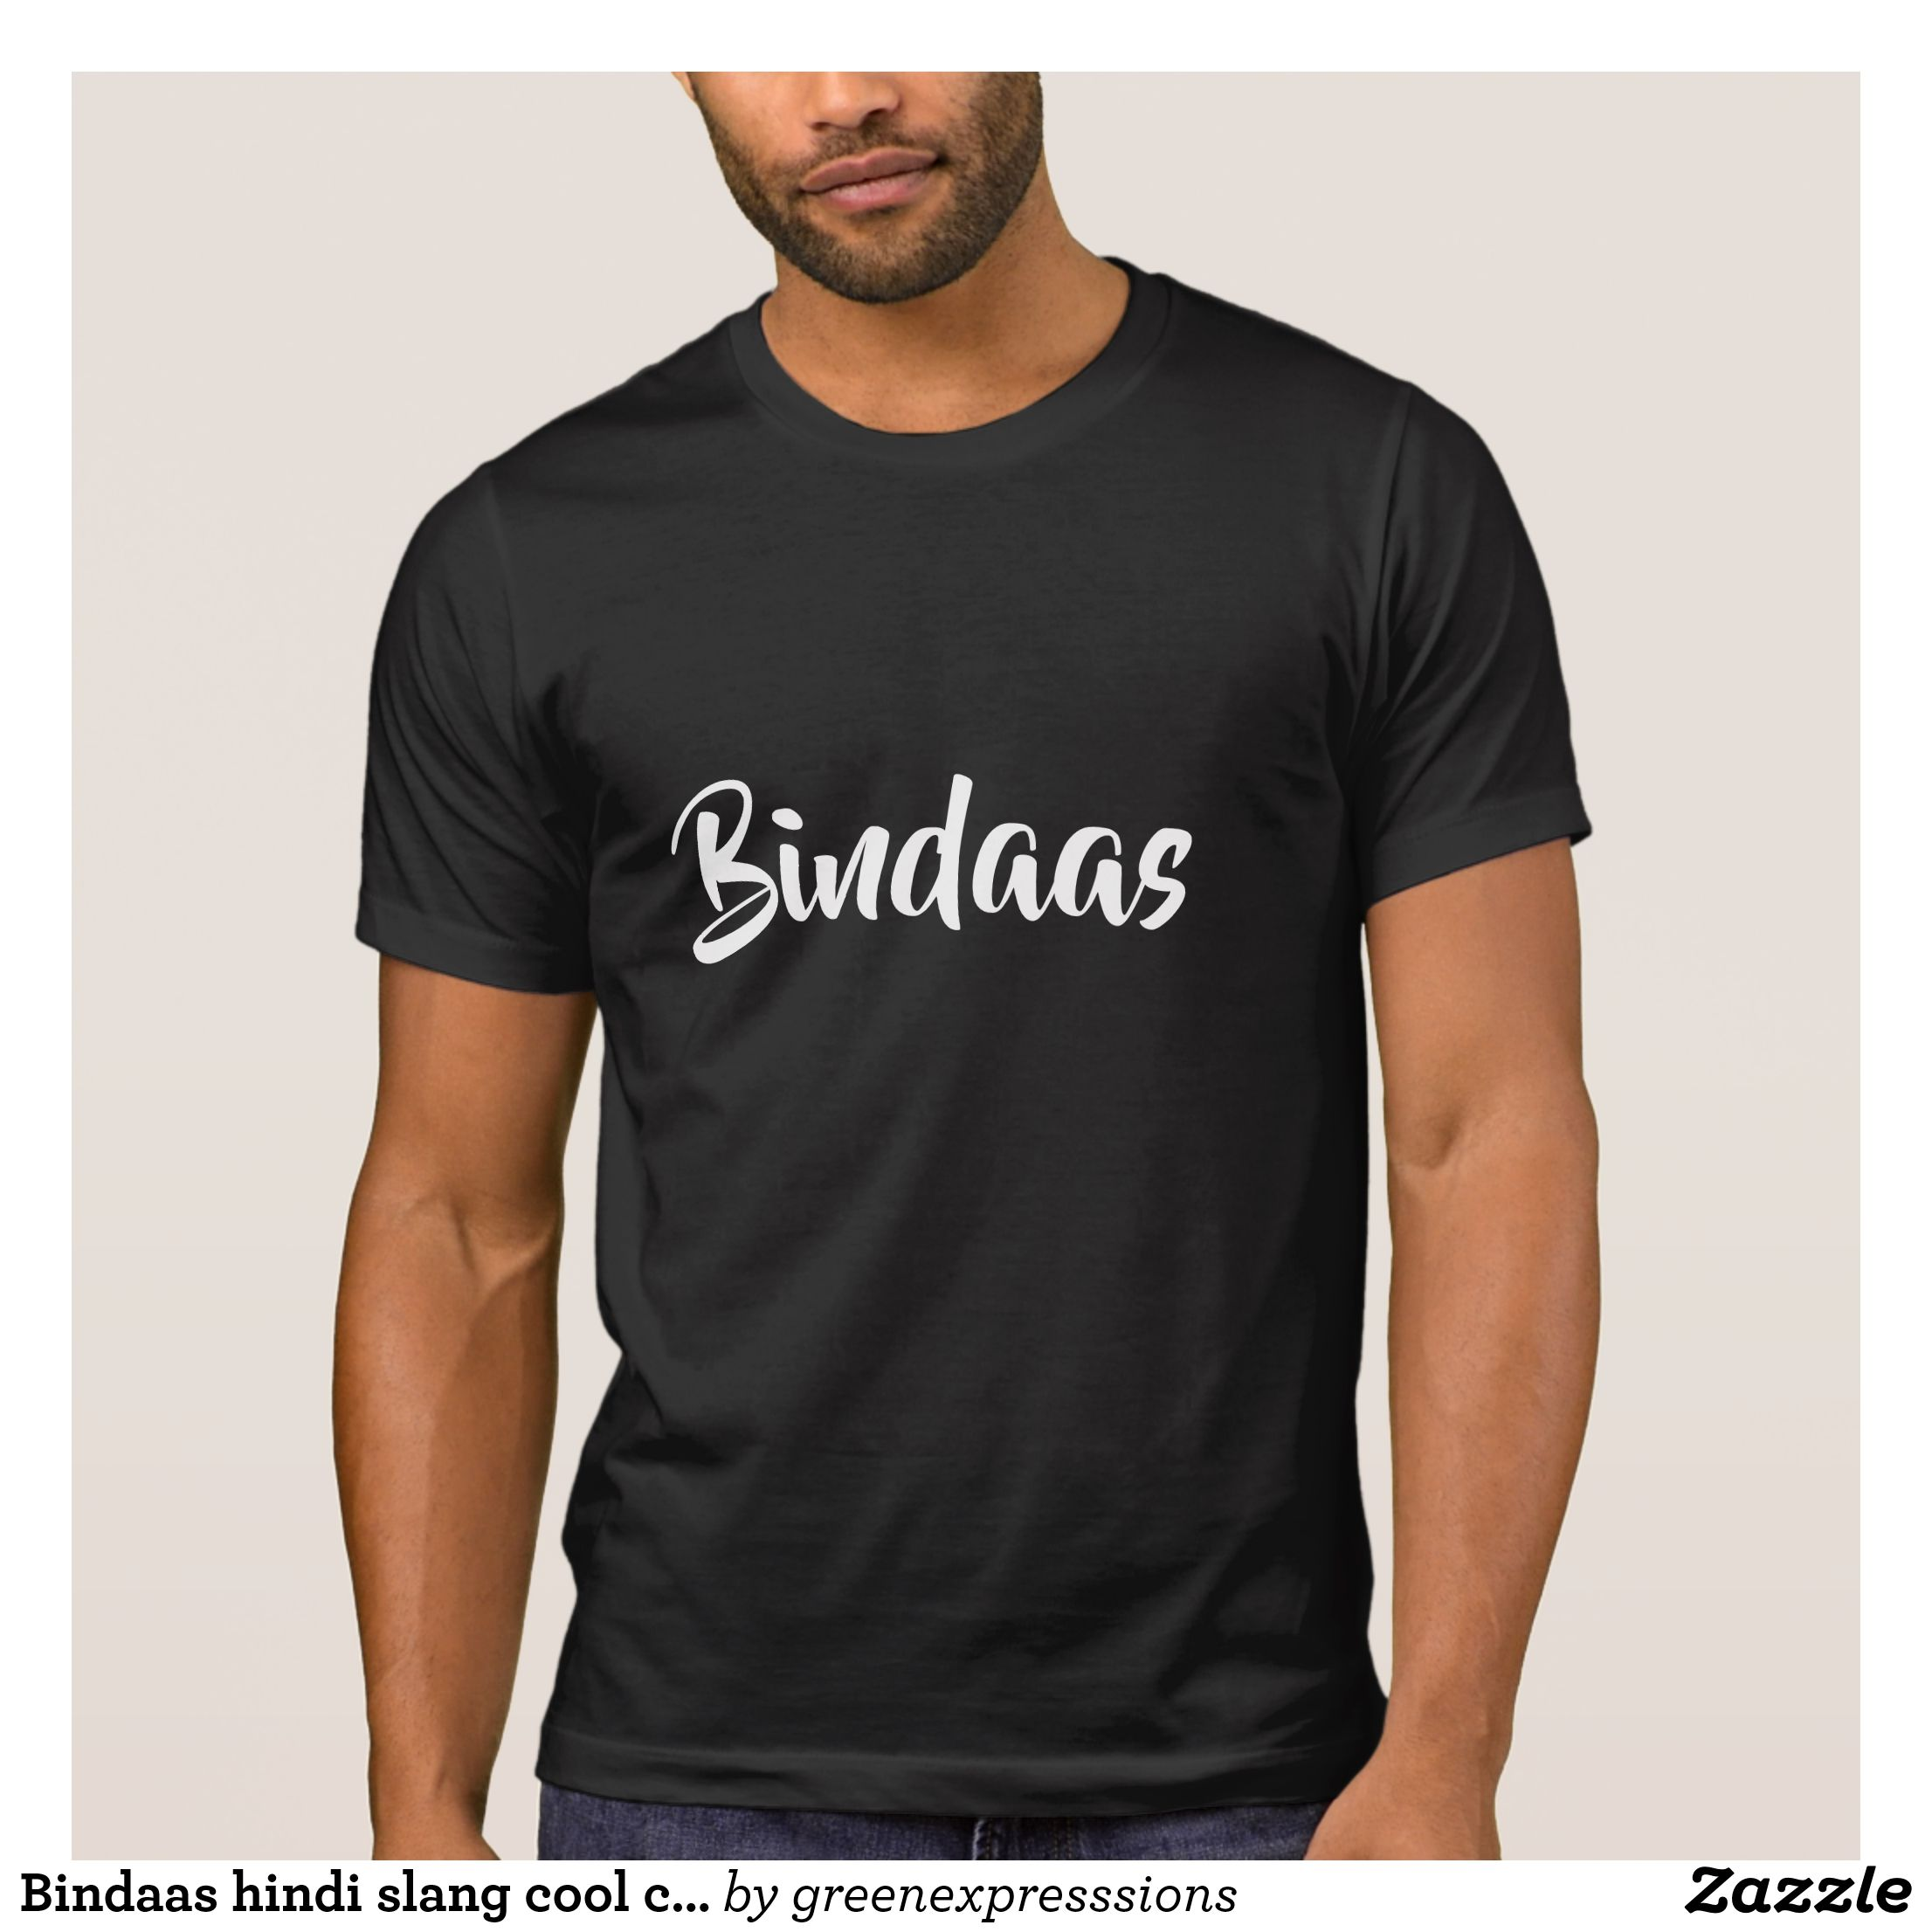 Bindaas hindi slang cool carefree Funny design T-Shirt - Classic Relaxed T- Shirts By Talented Fashion   Graphic Designers -  shirts  tshirts   mensfashion ... fffea1e06a55